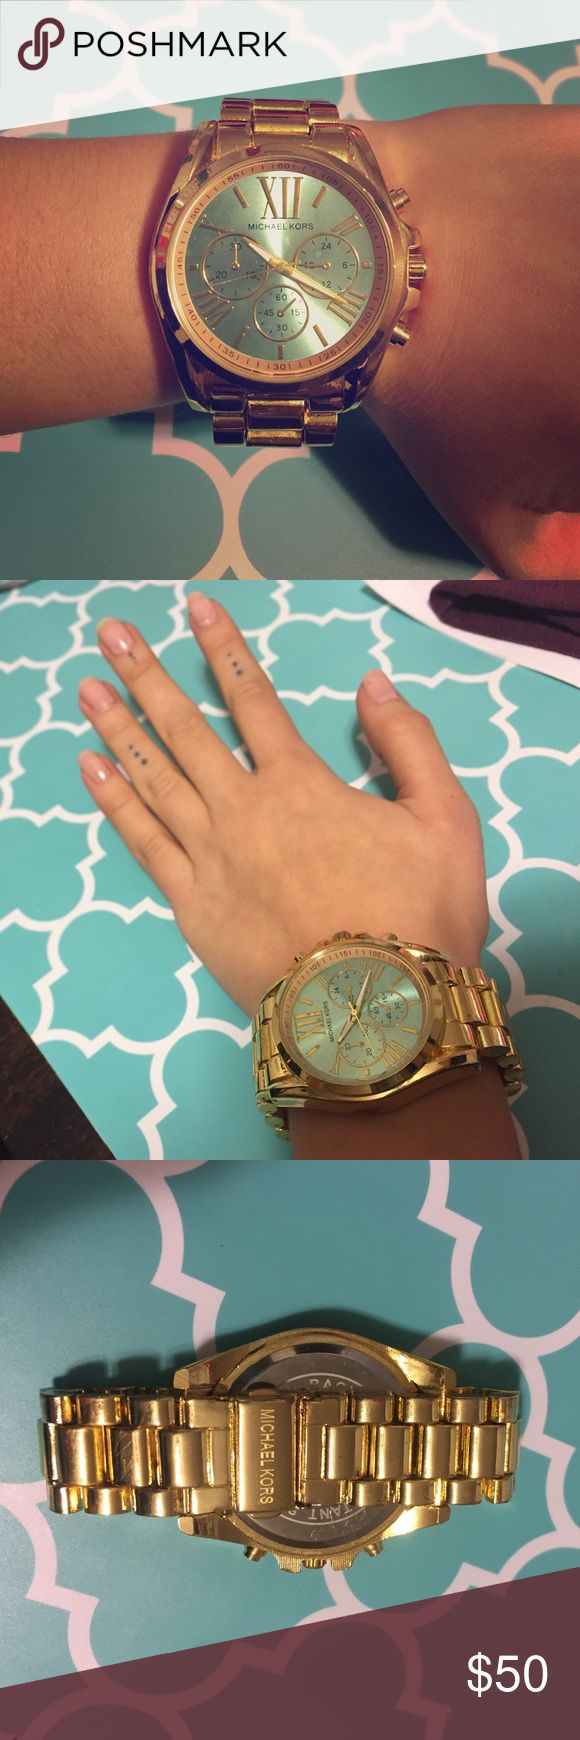 """MK gold and teal face oversized watch First, this watch is N O T auth. So please know that before purchasing. Gold tone watch with a beautiful teal face. Oversized face. Battery is dead. No scratches on face, some on the links. Doesn't come with extra links, will fit a small wrist. Perfect fashion statement. Back says this is """"stainless steel"""" and water resistant. The 3 smaller faces are for show, don't work with battery. Please feel free to ask me any questions!  Michael Kors Accessories…"""